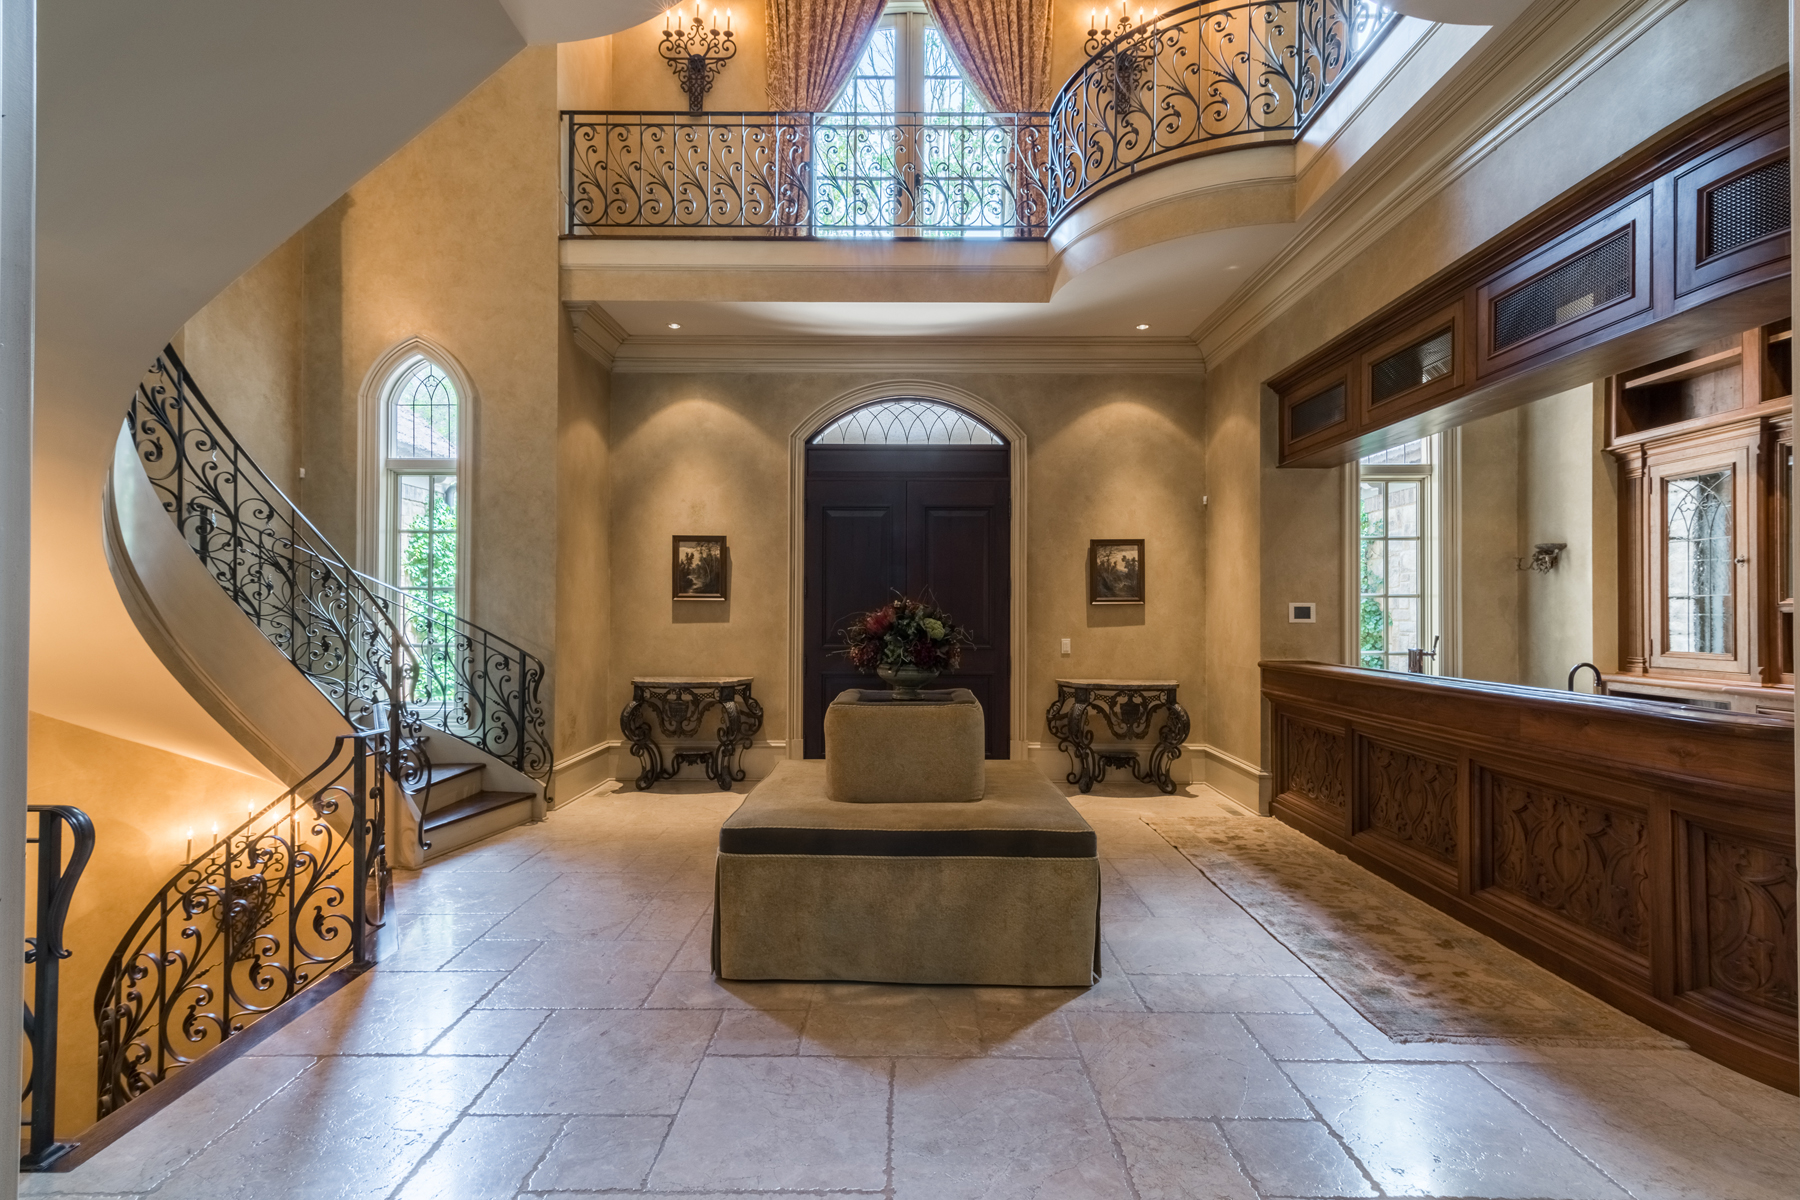 Additional photo for property listing at Custom Gated Stone Estate With Lighted Tennis Court And Heated Pool 4934 Powers Ferry Road Atlanta, Georgia 30327 United States